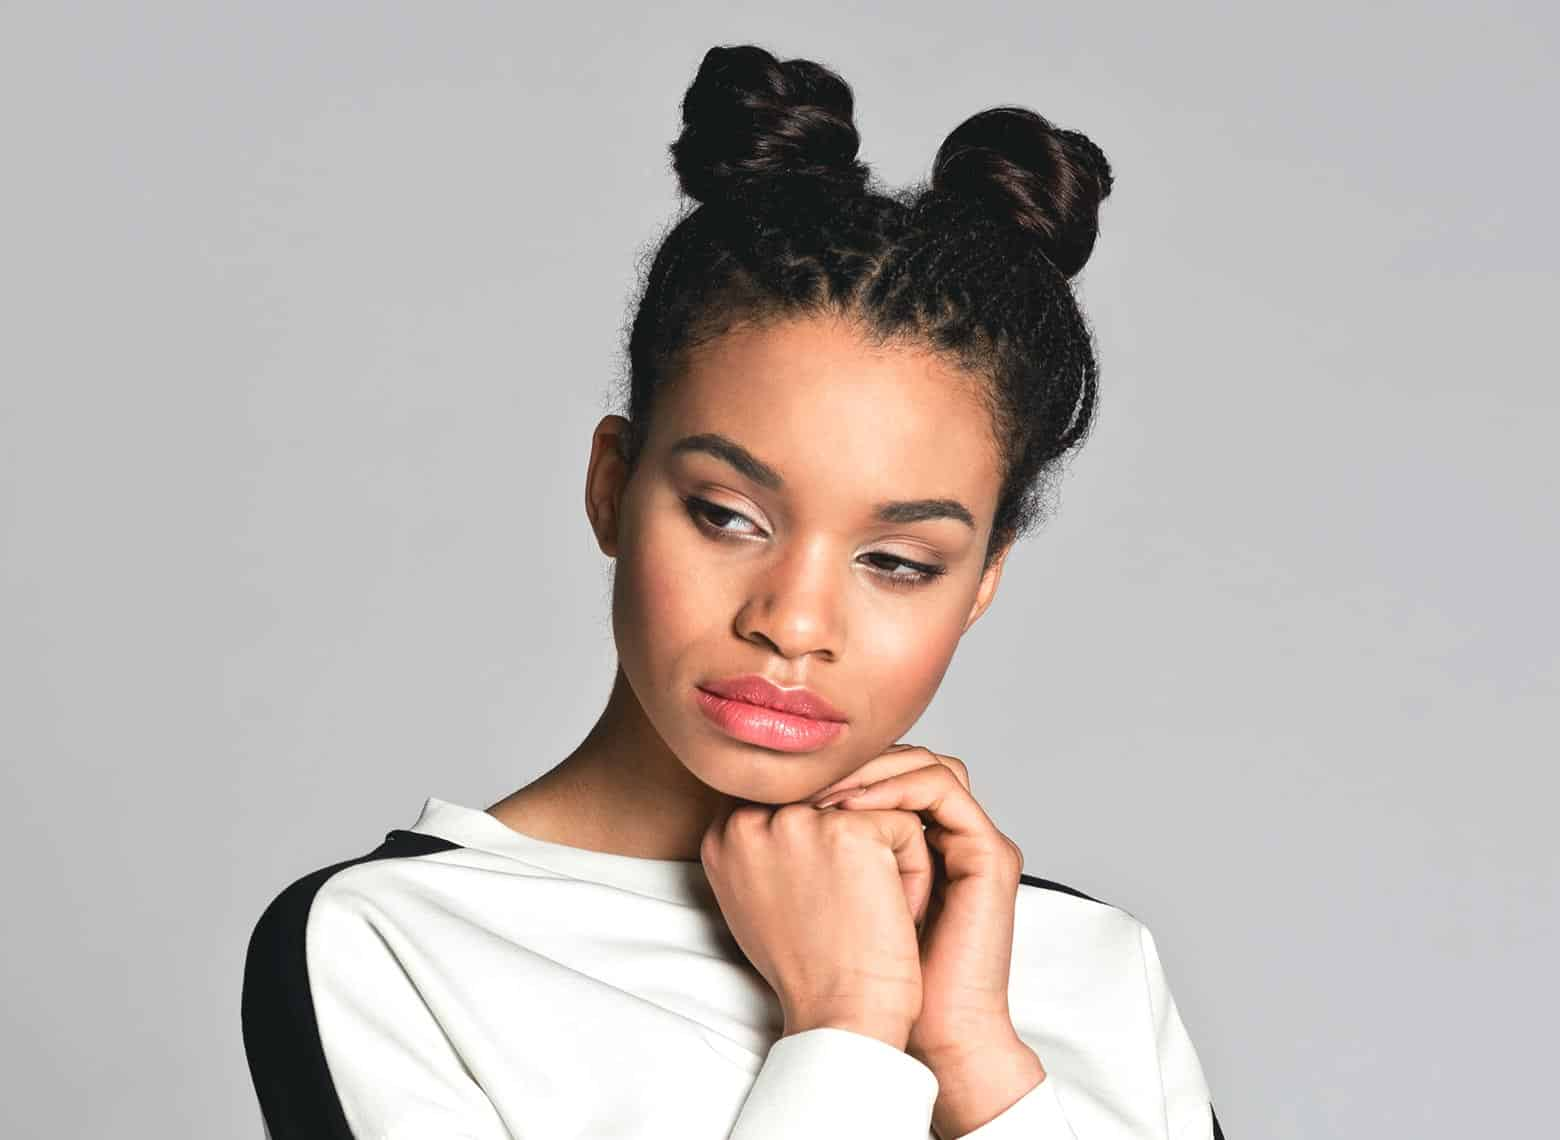 woman with braided space buns